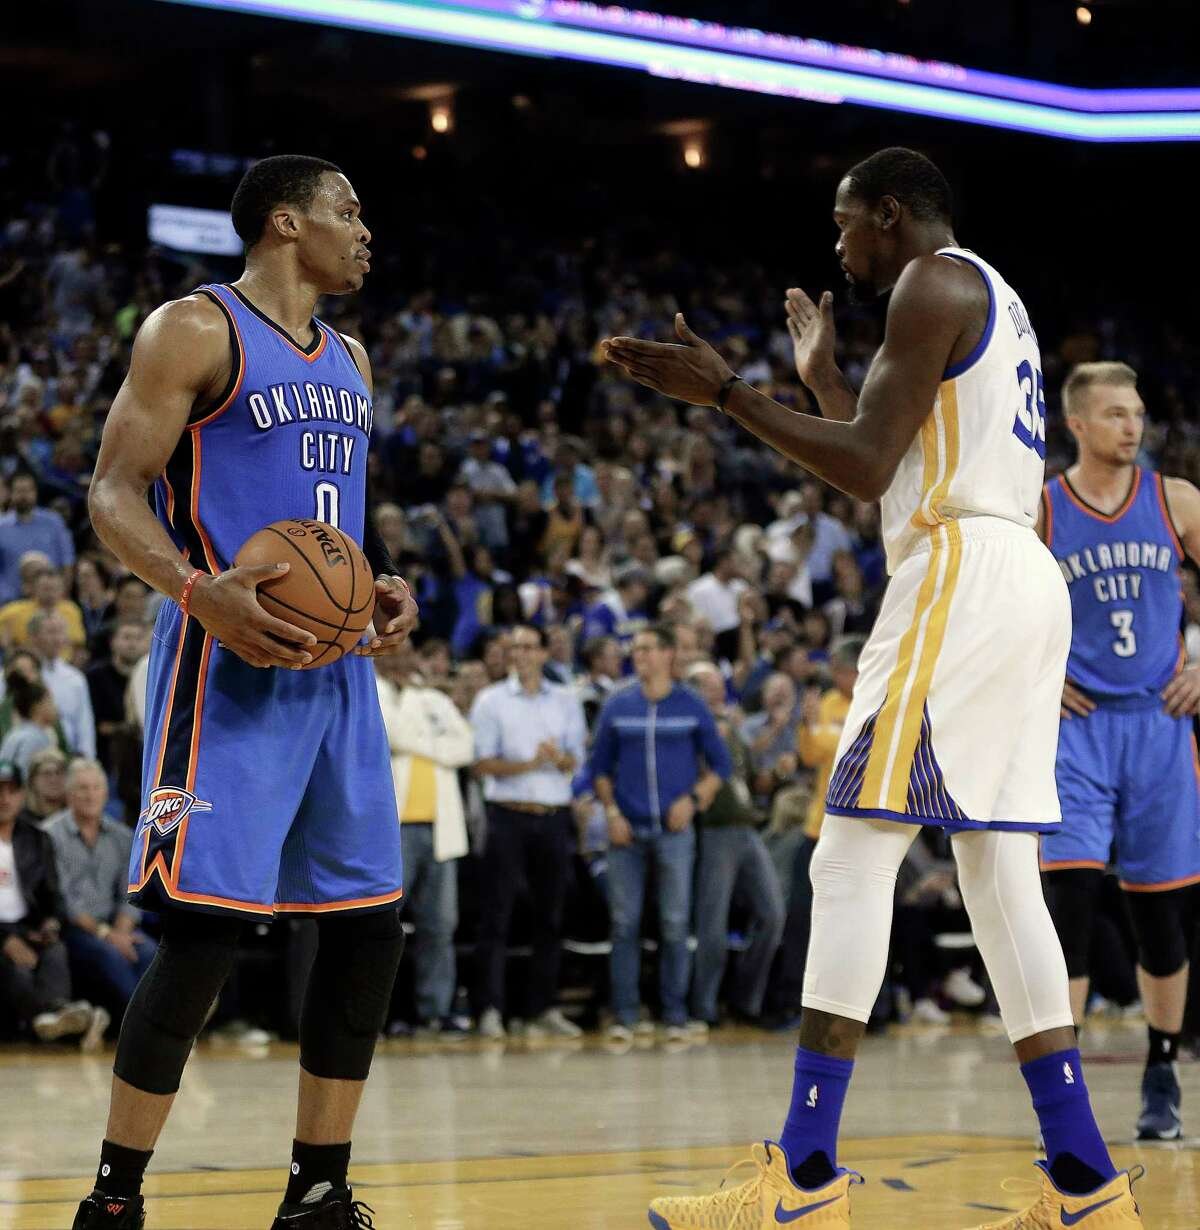 FILE - In this Nov. 3, 2016, file photo, Golden State Warriors' Kevin Durant, right, celebrates in front of Oklahoma City Thunder guard Russell Westbrook (0) during the first half of an NBA basketball game, in Oakland, Calif. The next time Russell Westbrook walks into a locker room for a game, Kevin Durant will be there. Get ready for the perhaps the best subplot of All-Star Weekend. The former Oklahoma City teammates and now rivals play as Western Conference teammates Sunday night, Feb. 19, 2017.(AP Photo/Ben Margot, File) ORG XMIT: NY172